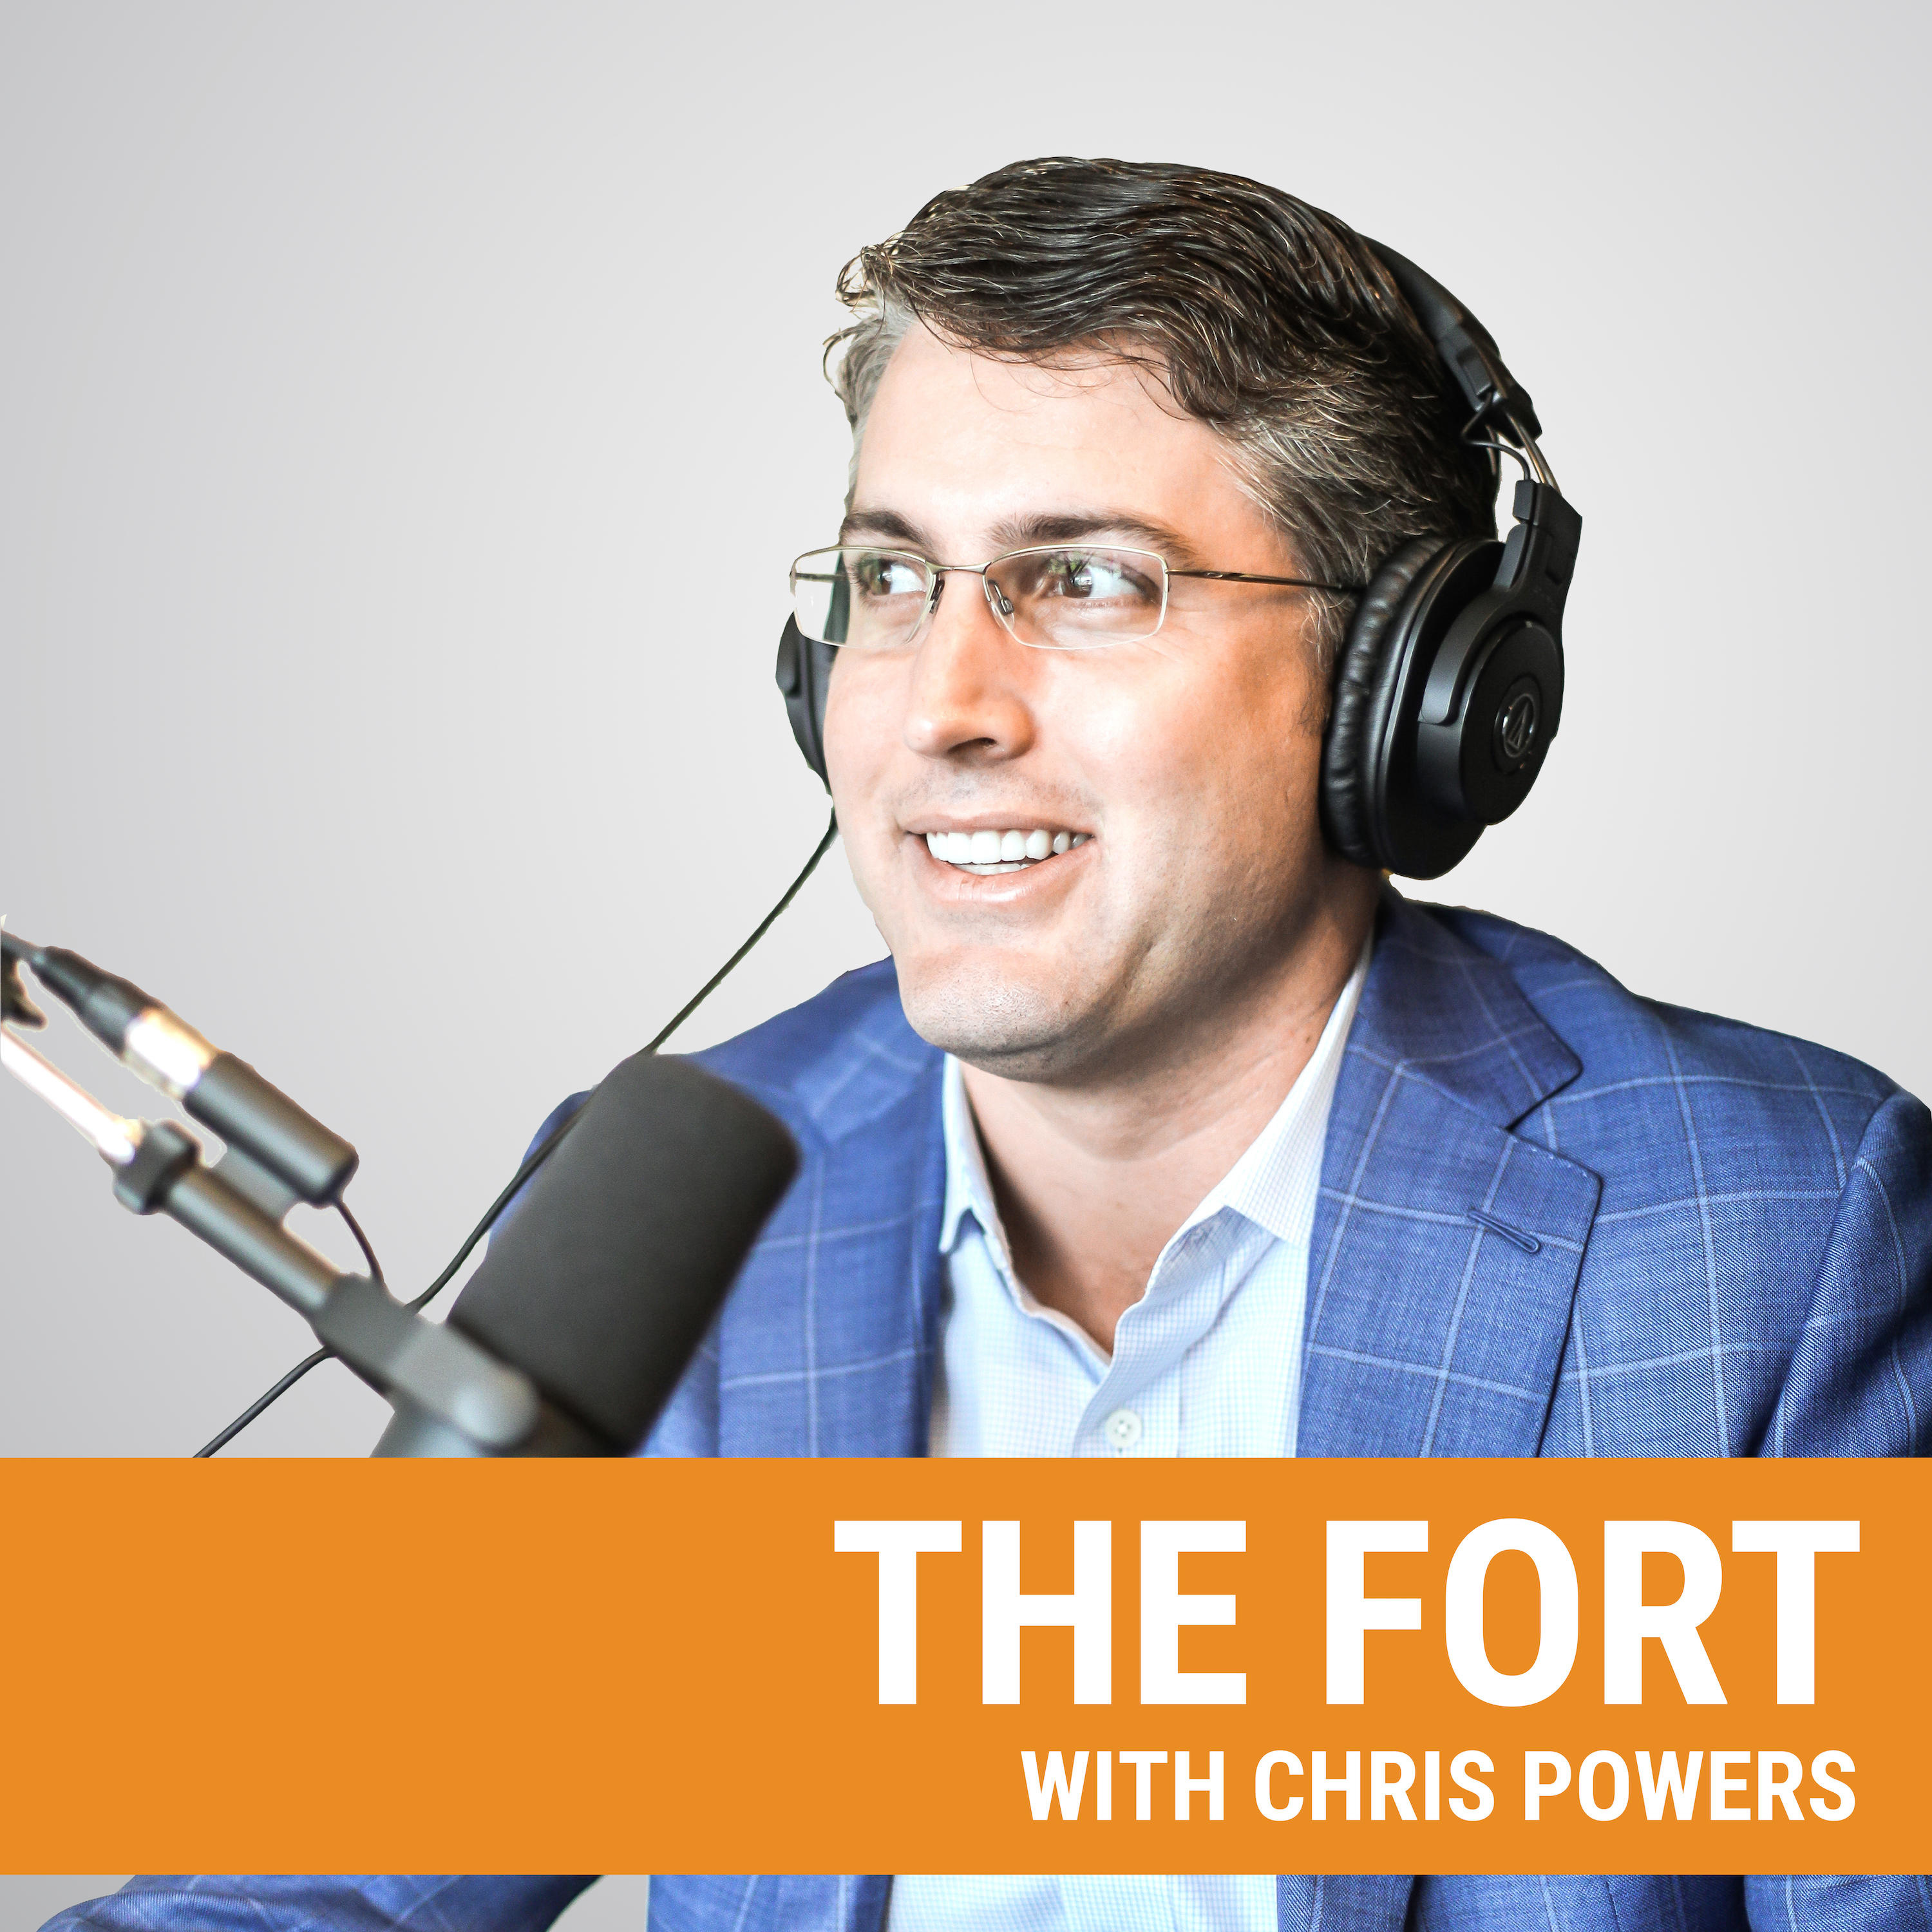 The FORT with Chris Powers